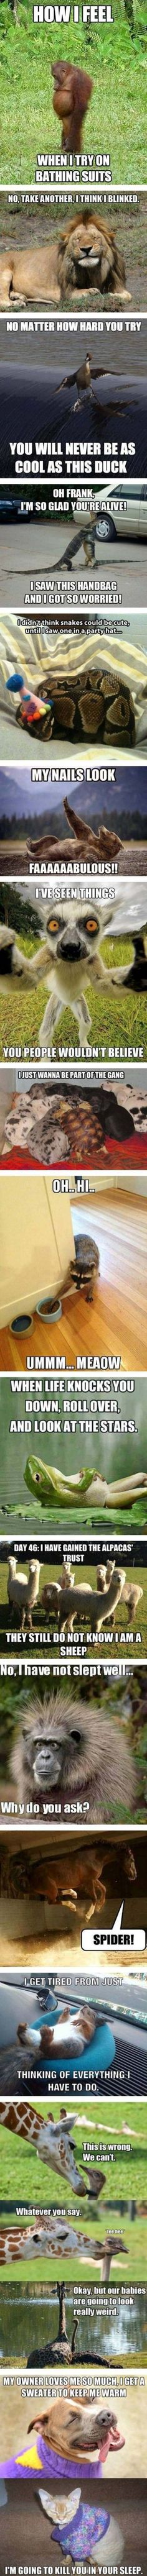 funny pictures with captions 222 (53 pict)   Funny pictures #compartirvideos #funnypictures